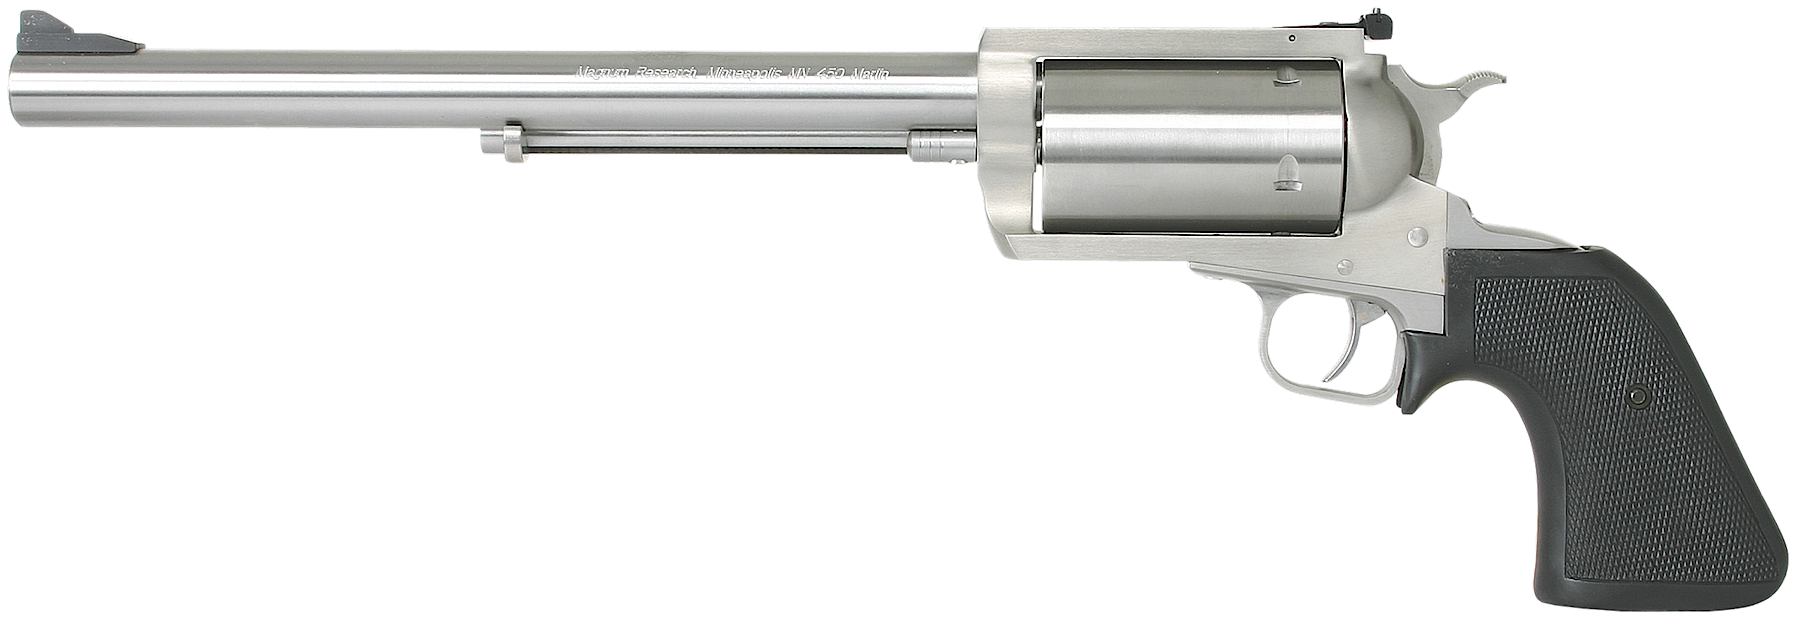 Magnum Research® BFR Long Cylinder Revolver - .450 Marlin 5rd - 10